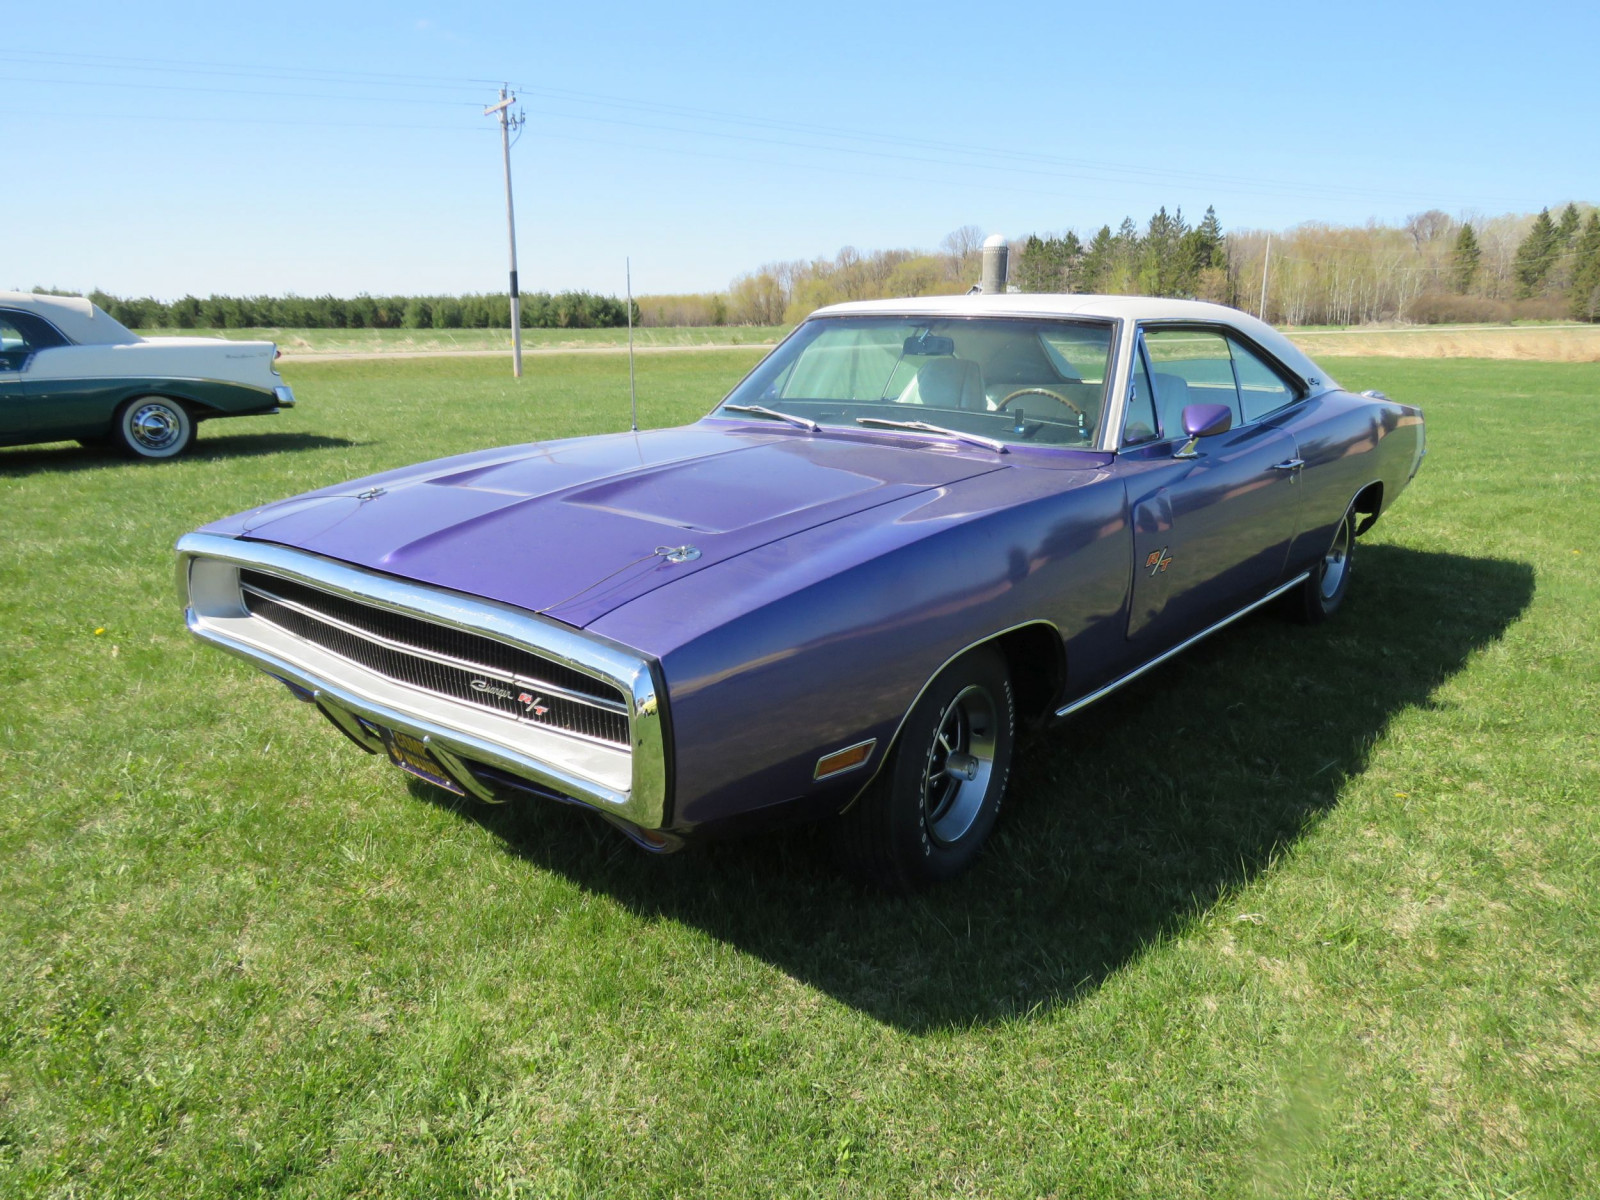 1970 Dodge Charger RT Amazing Survivor - Image 15